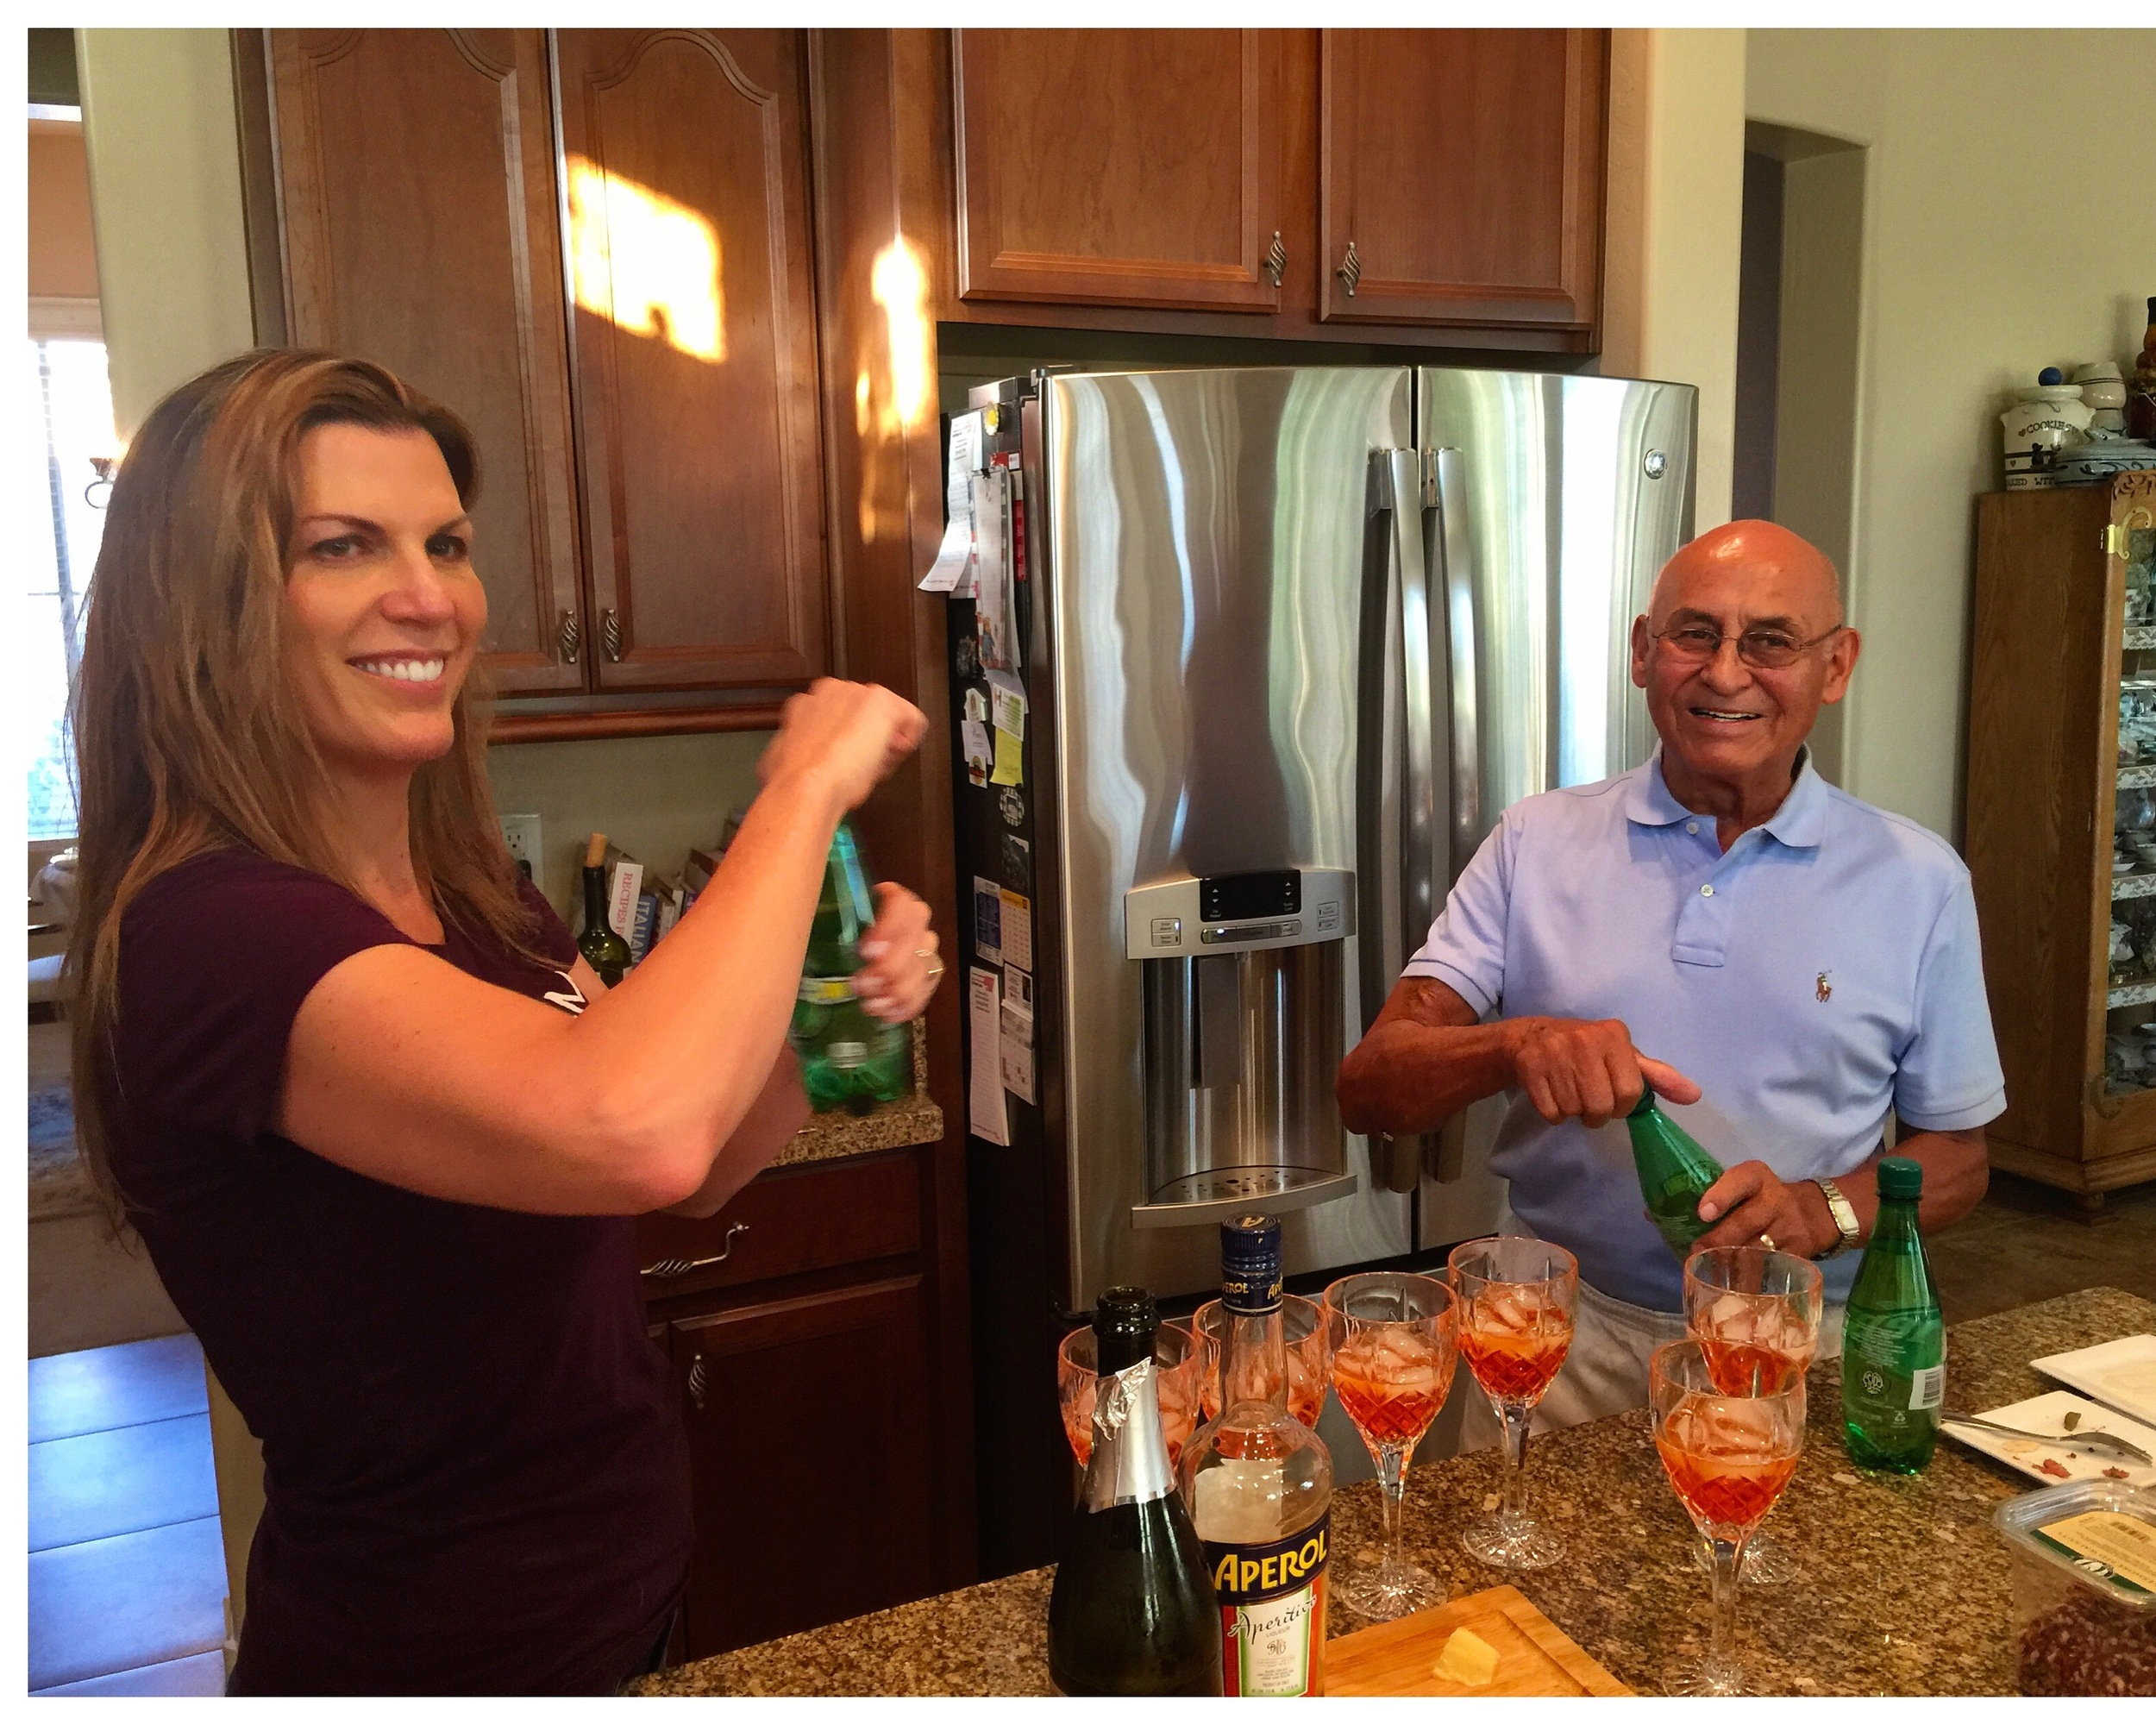 Isabel fixing Aperol Spritzs with Grandpa Don Candelaria